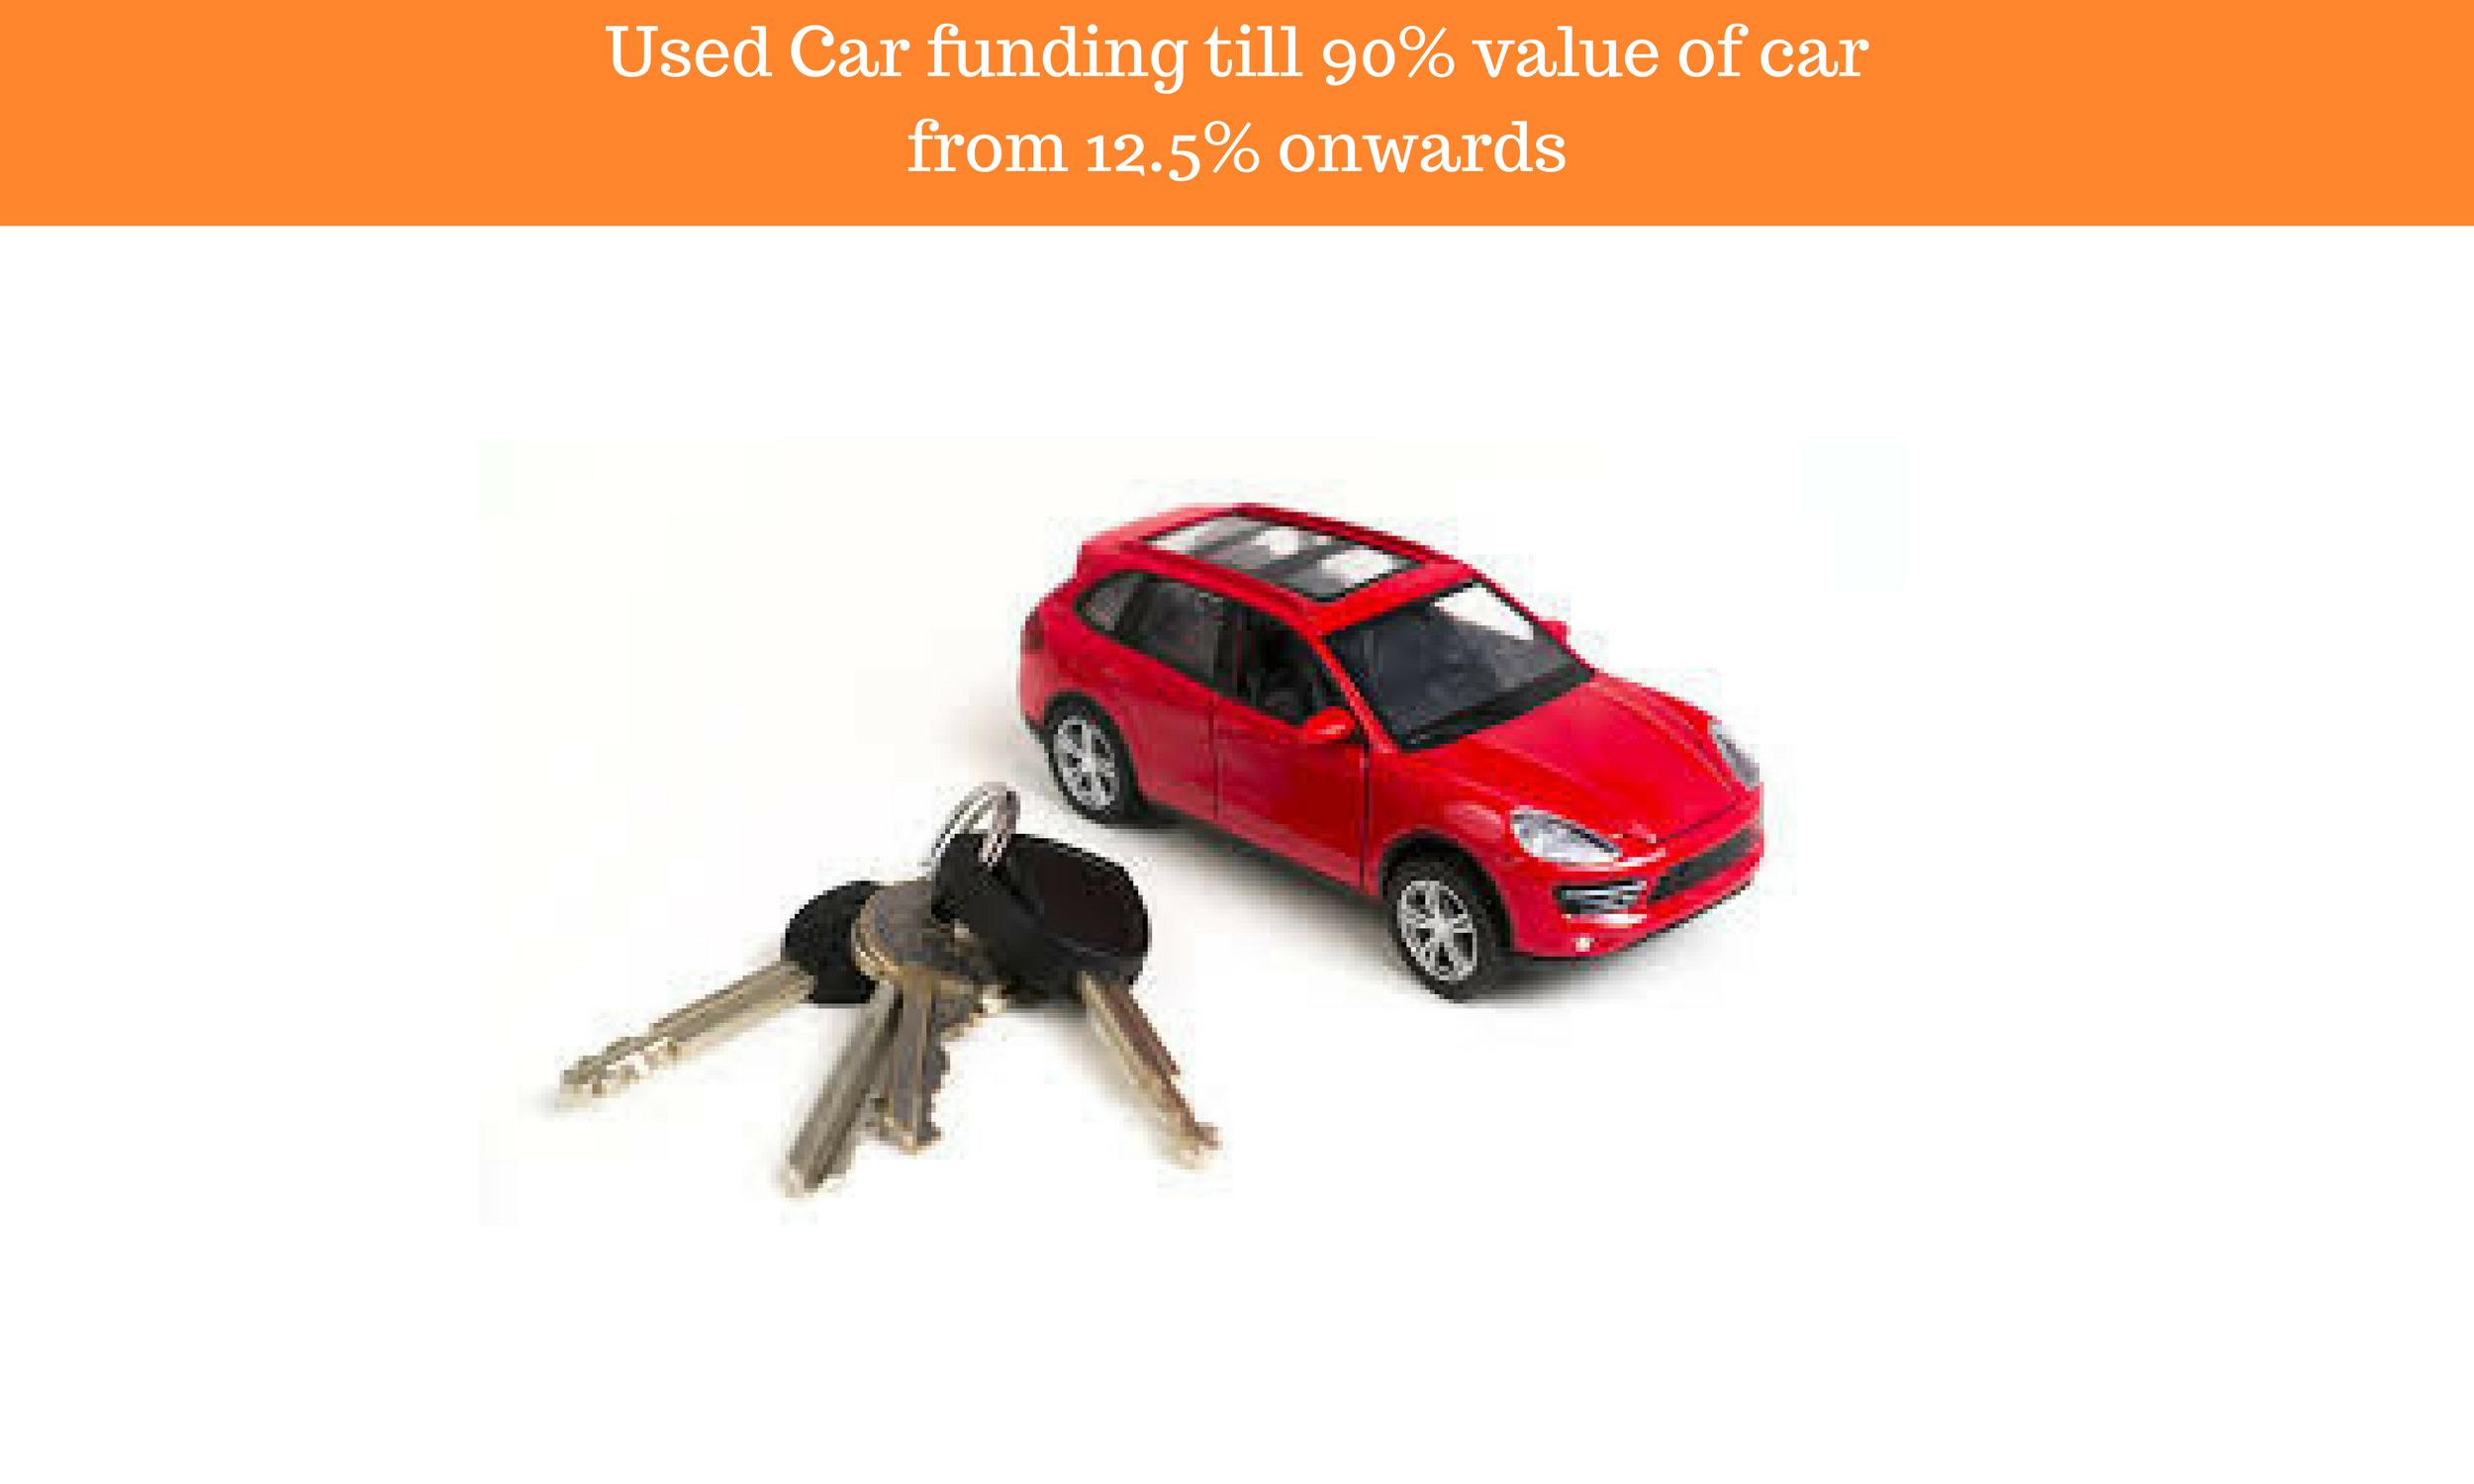 Used Car funding till 90% value of car from 12.5% onwards